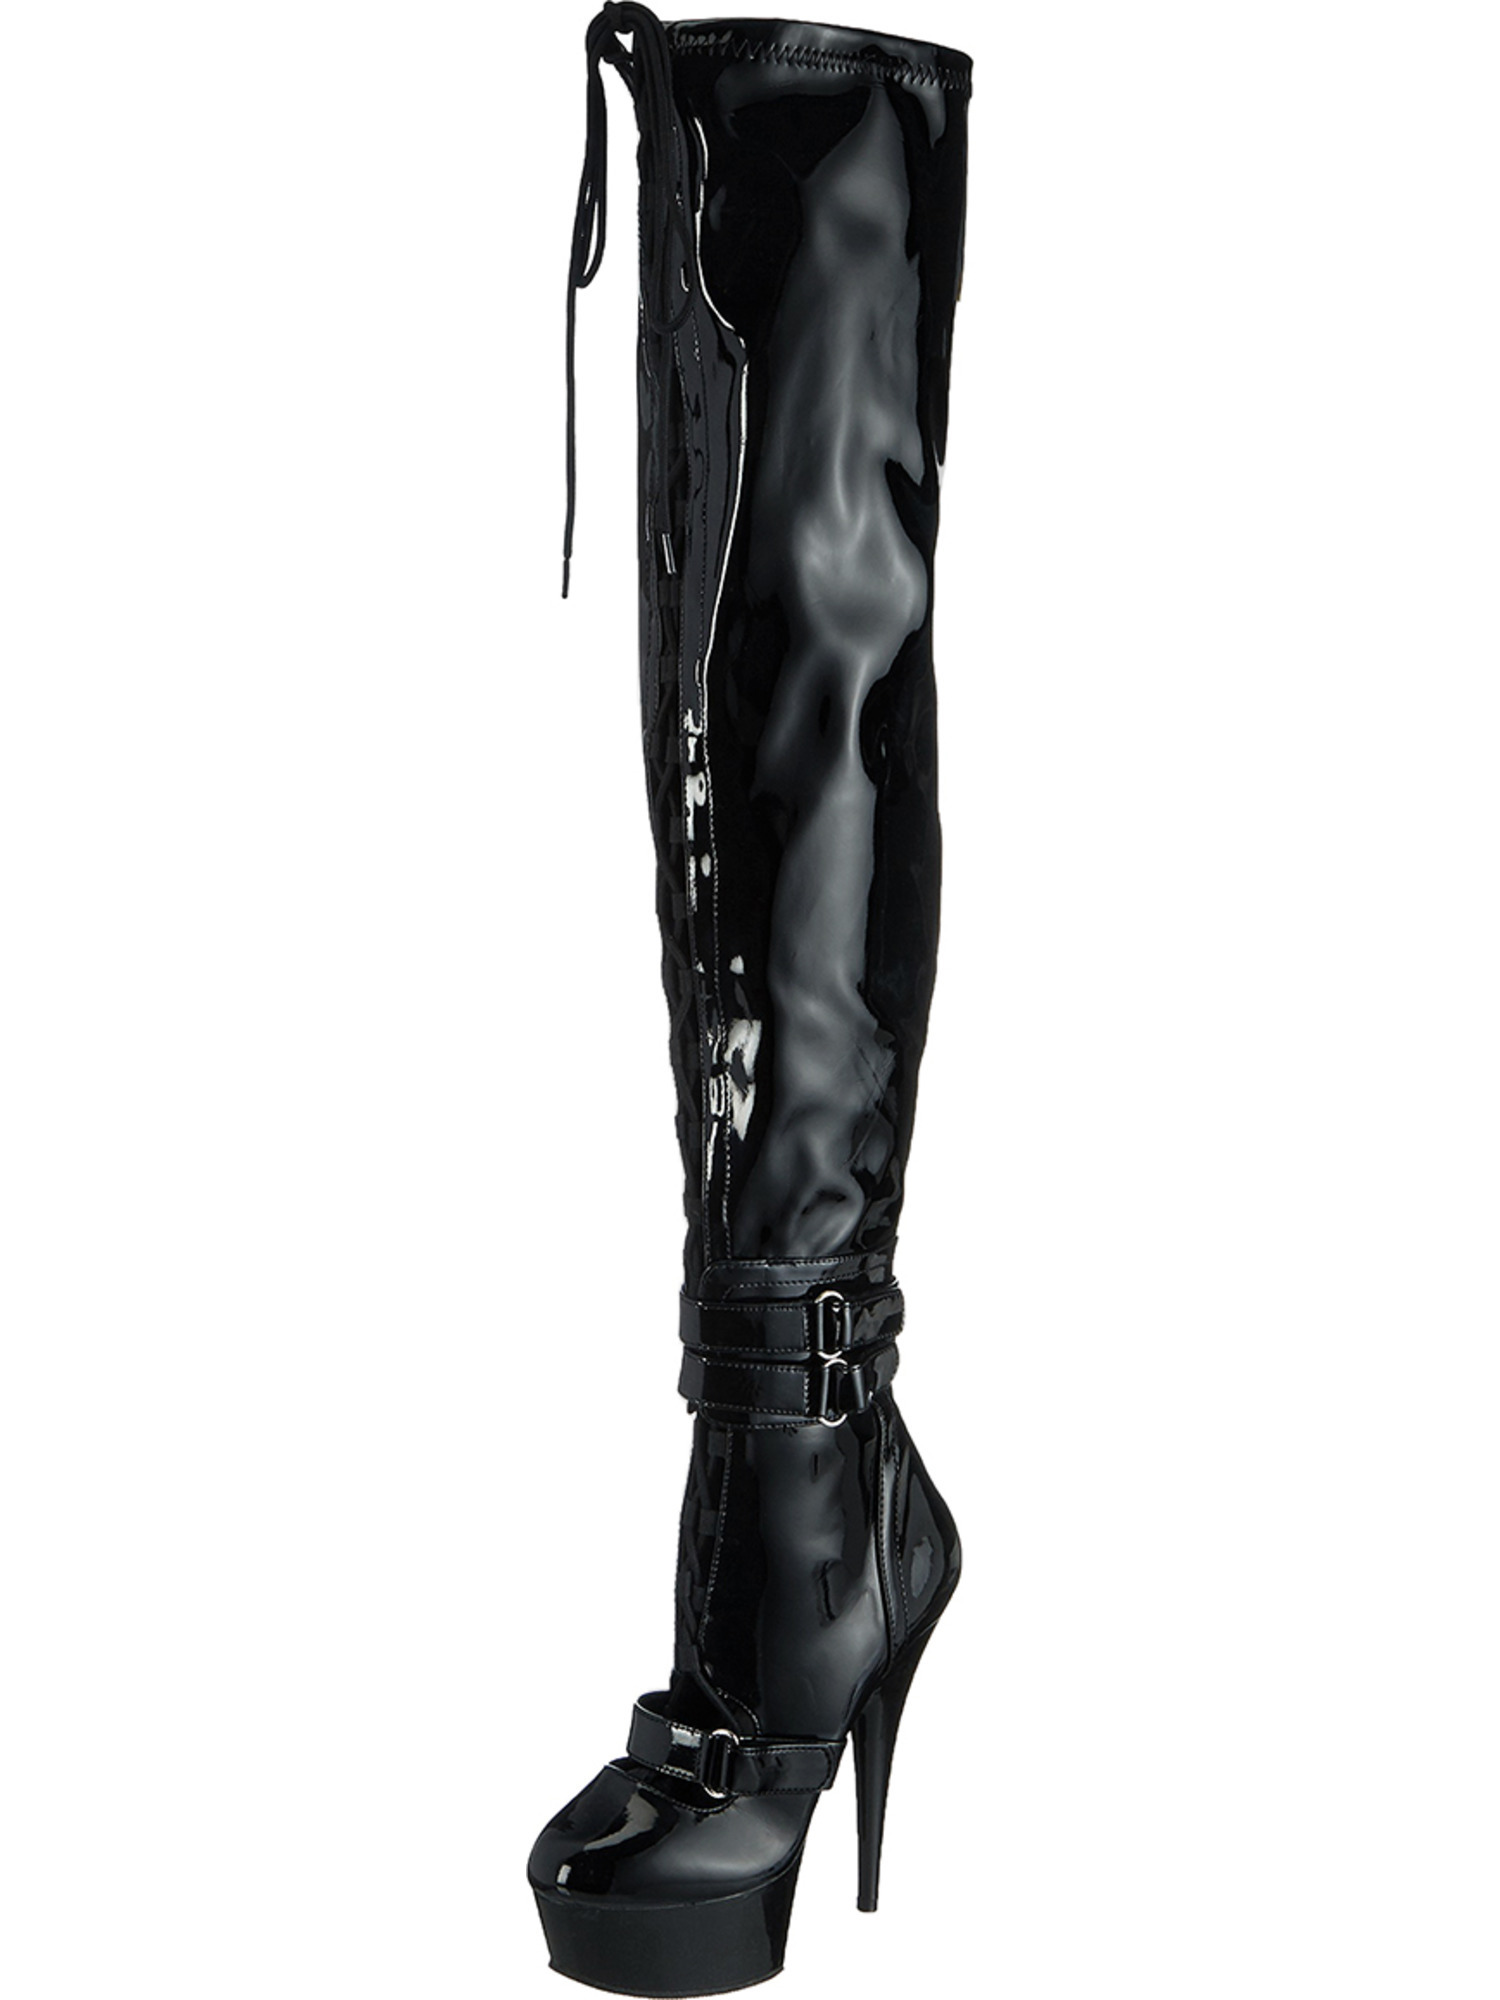 1ee6e04a39f SummitFashions - Womens Over the Knee Boots Black Patent Thigh Highs Lace  Up Straps 6 Inch Heels - Walmart.com